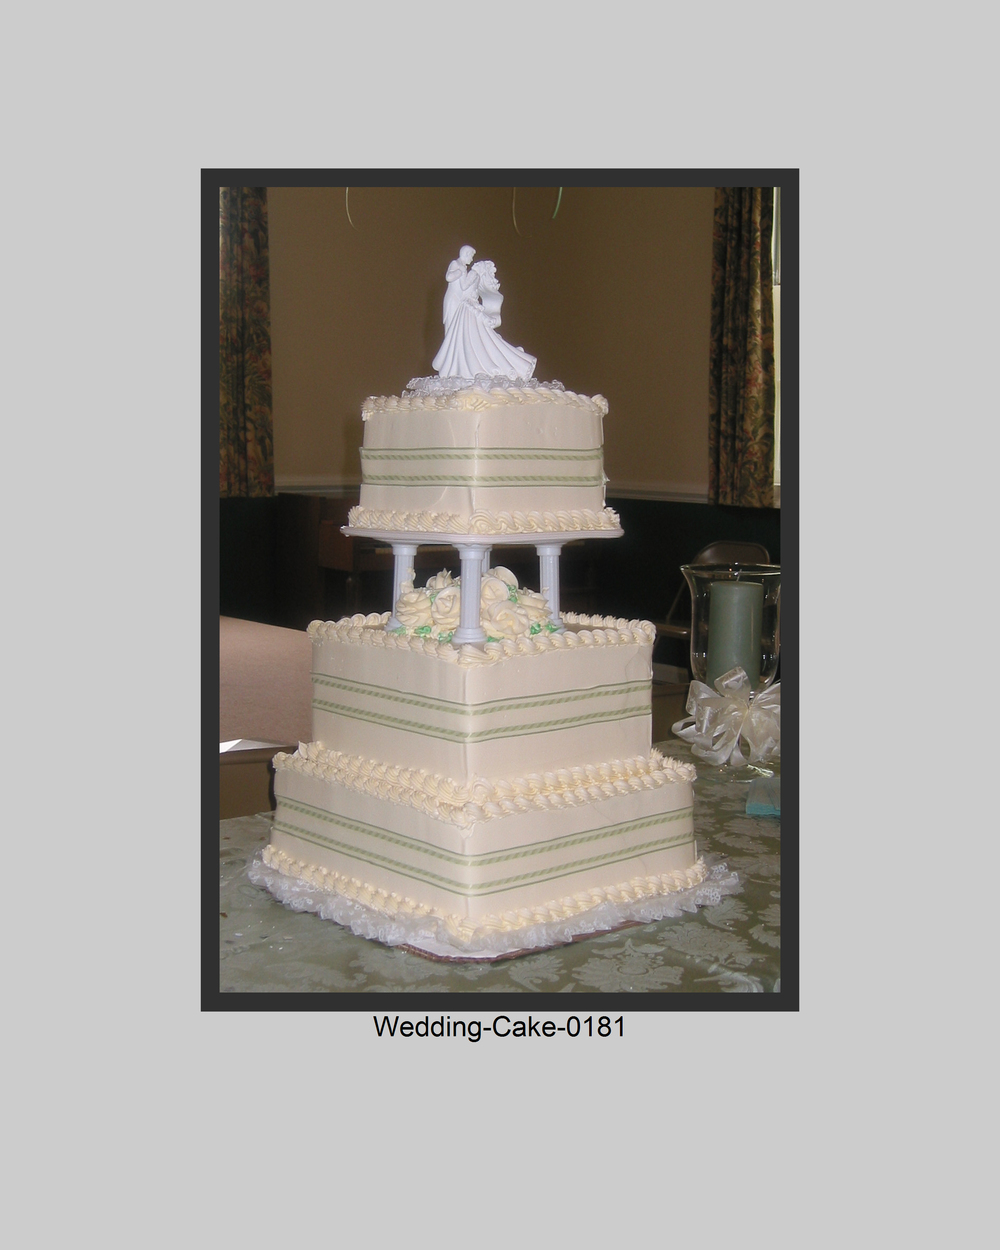 Wedding-Cake-Prints-0181.jpg